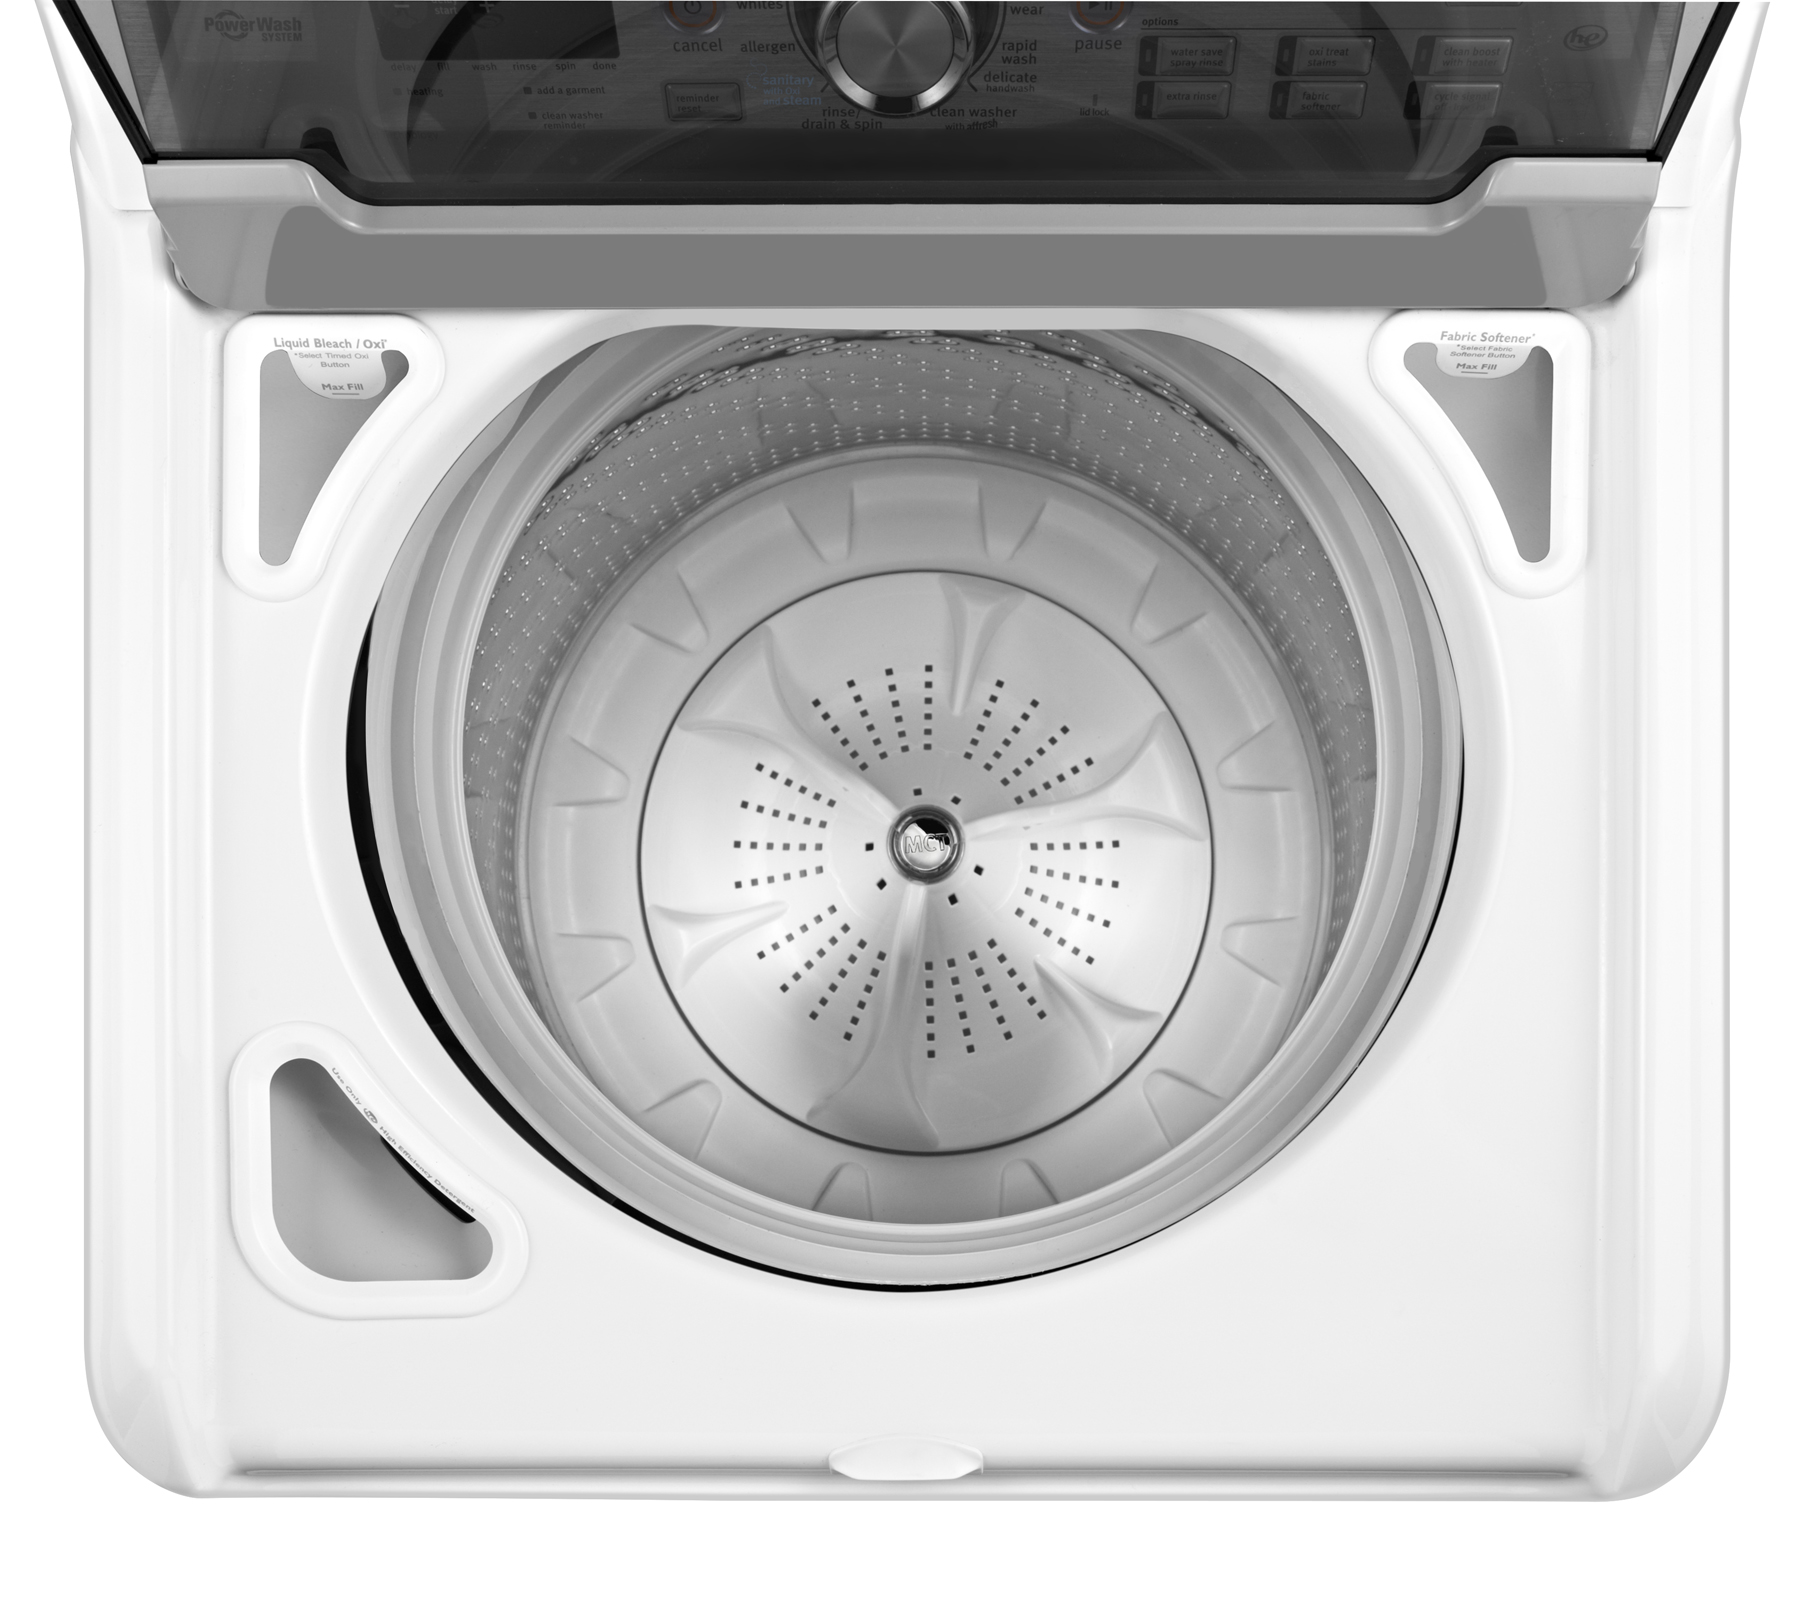 Maytag 4.5 cu. ft. Bravos XL® High-Efficiency Top-Load Washer - White